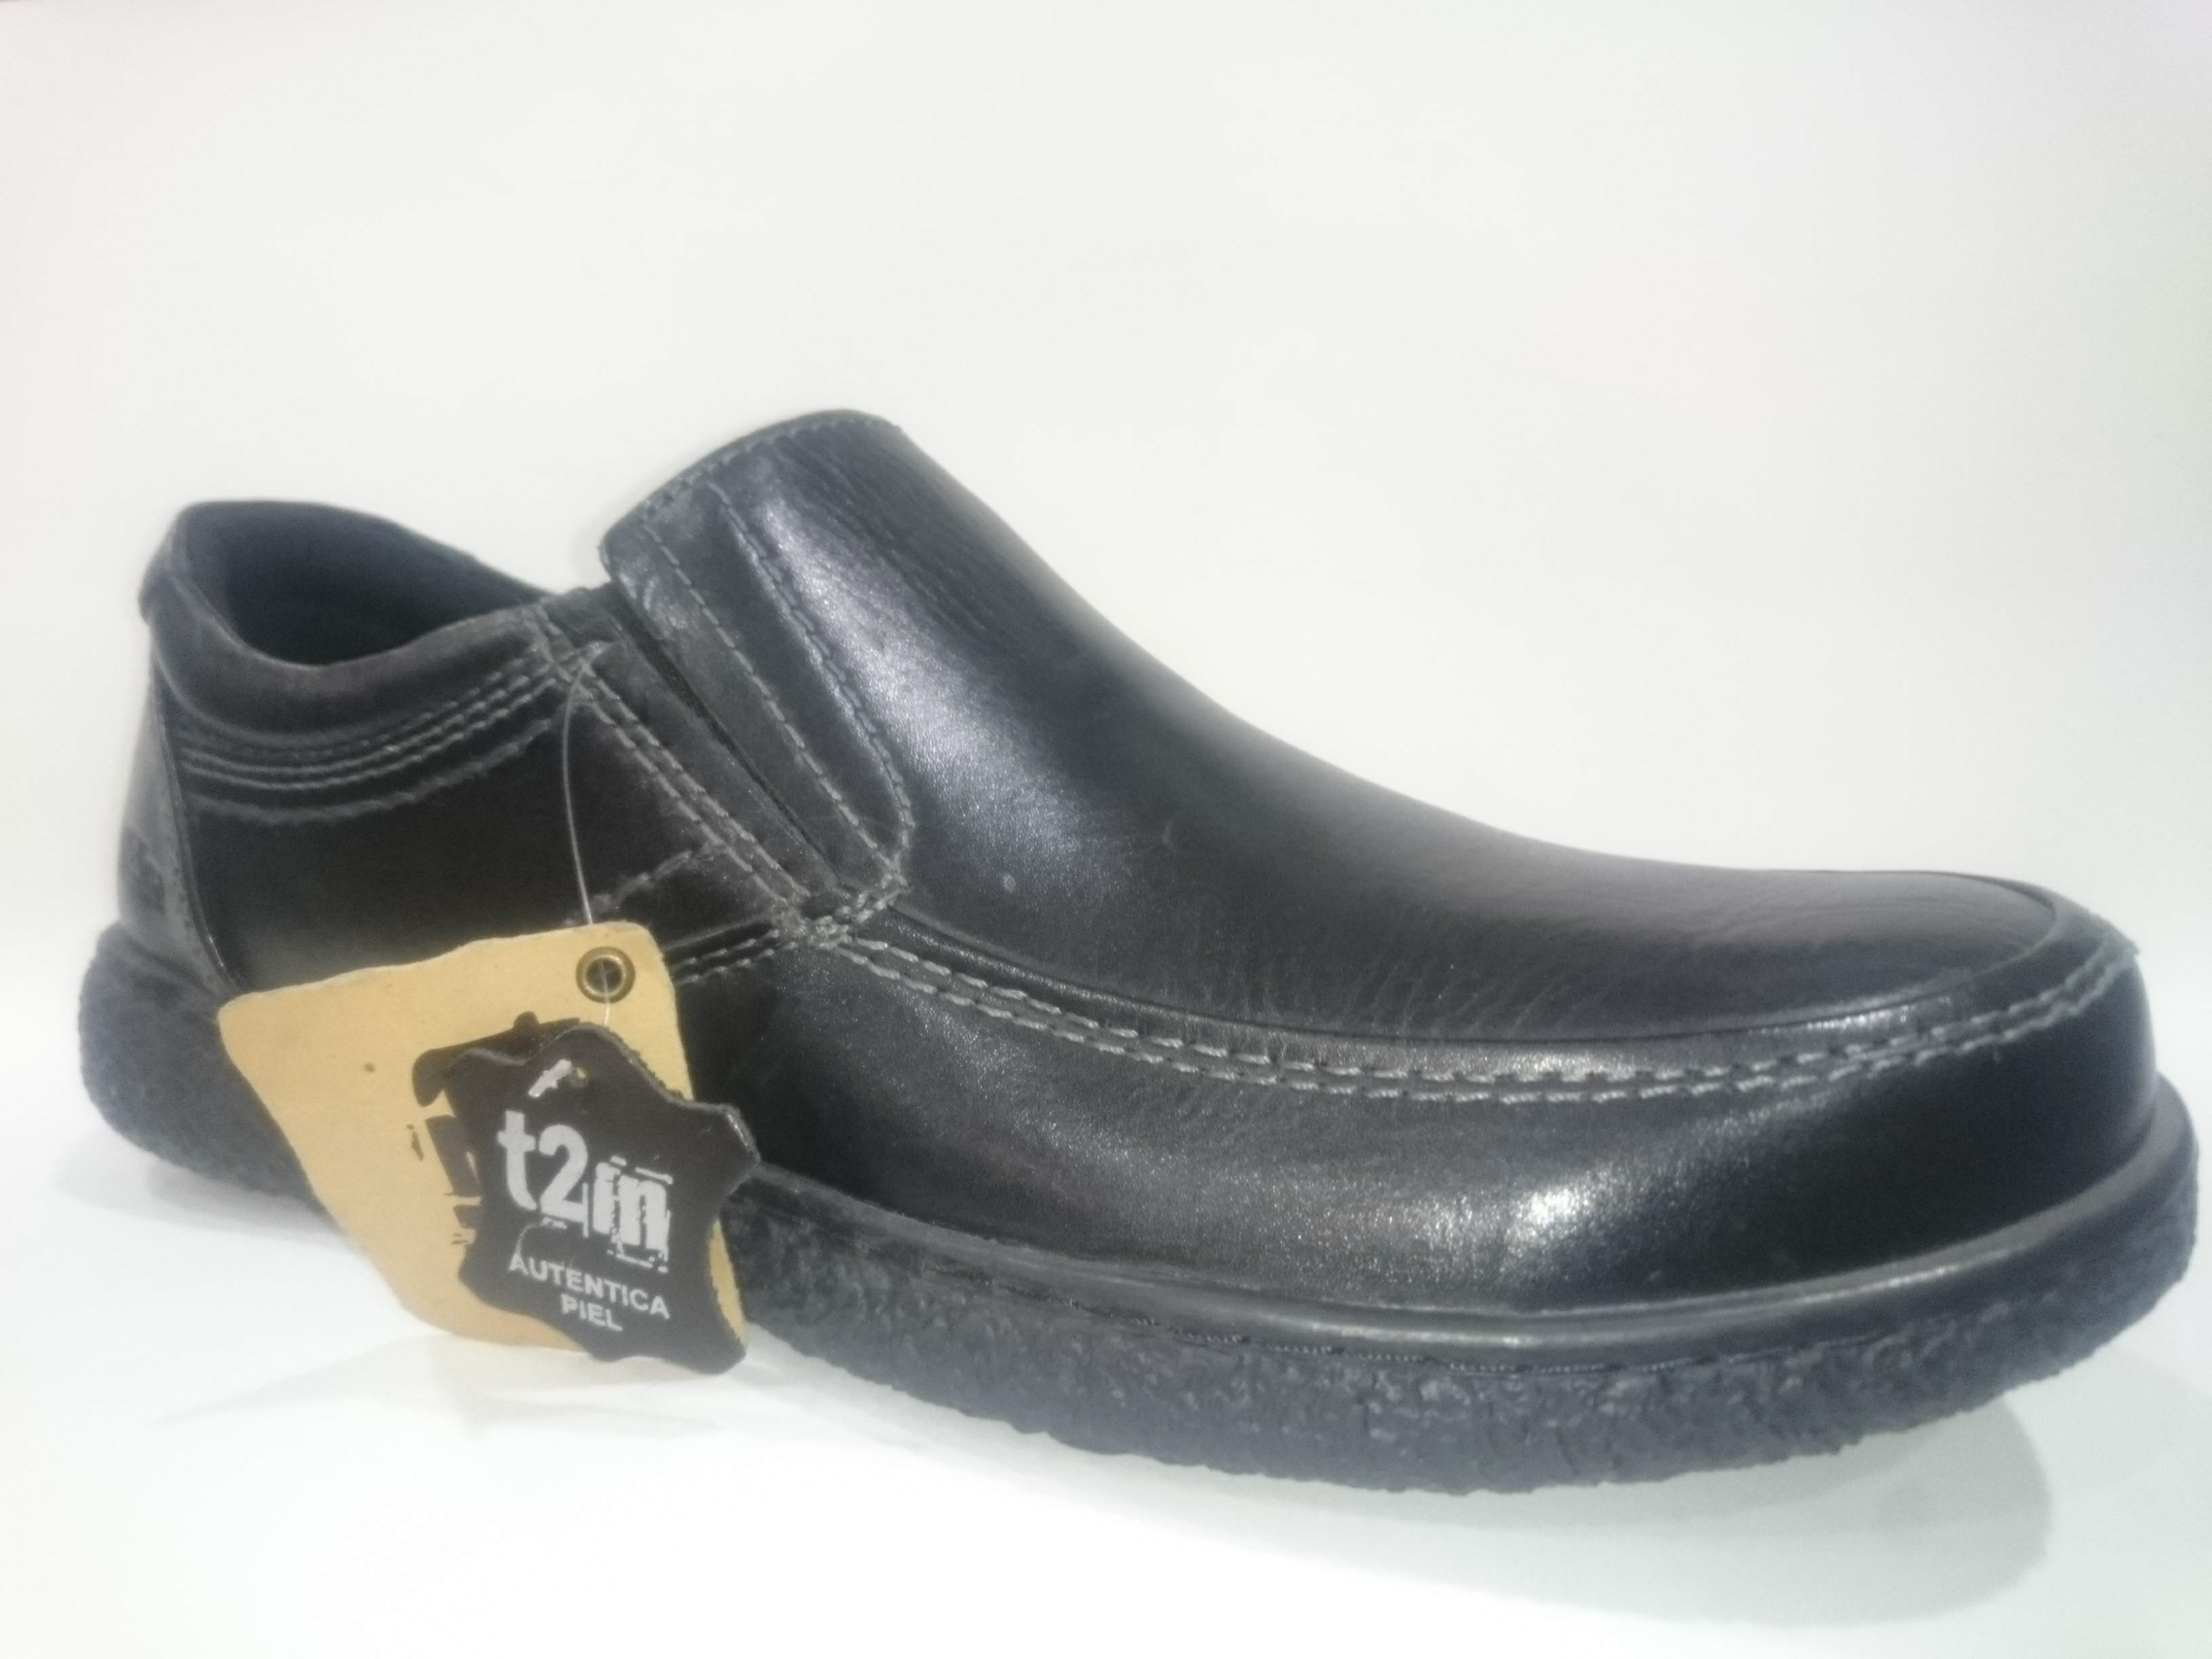 Zapatos T2IN